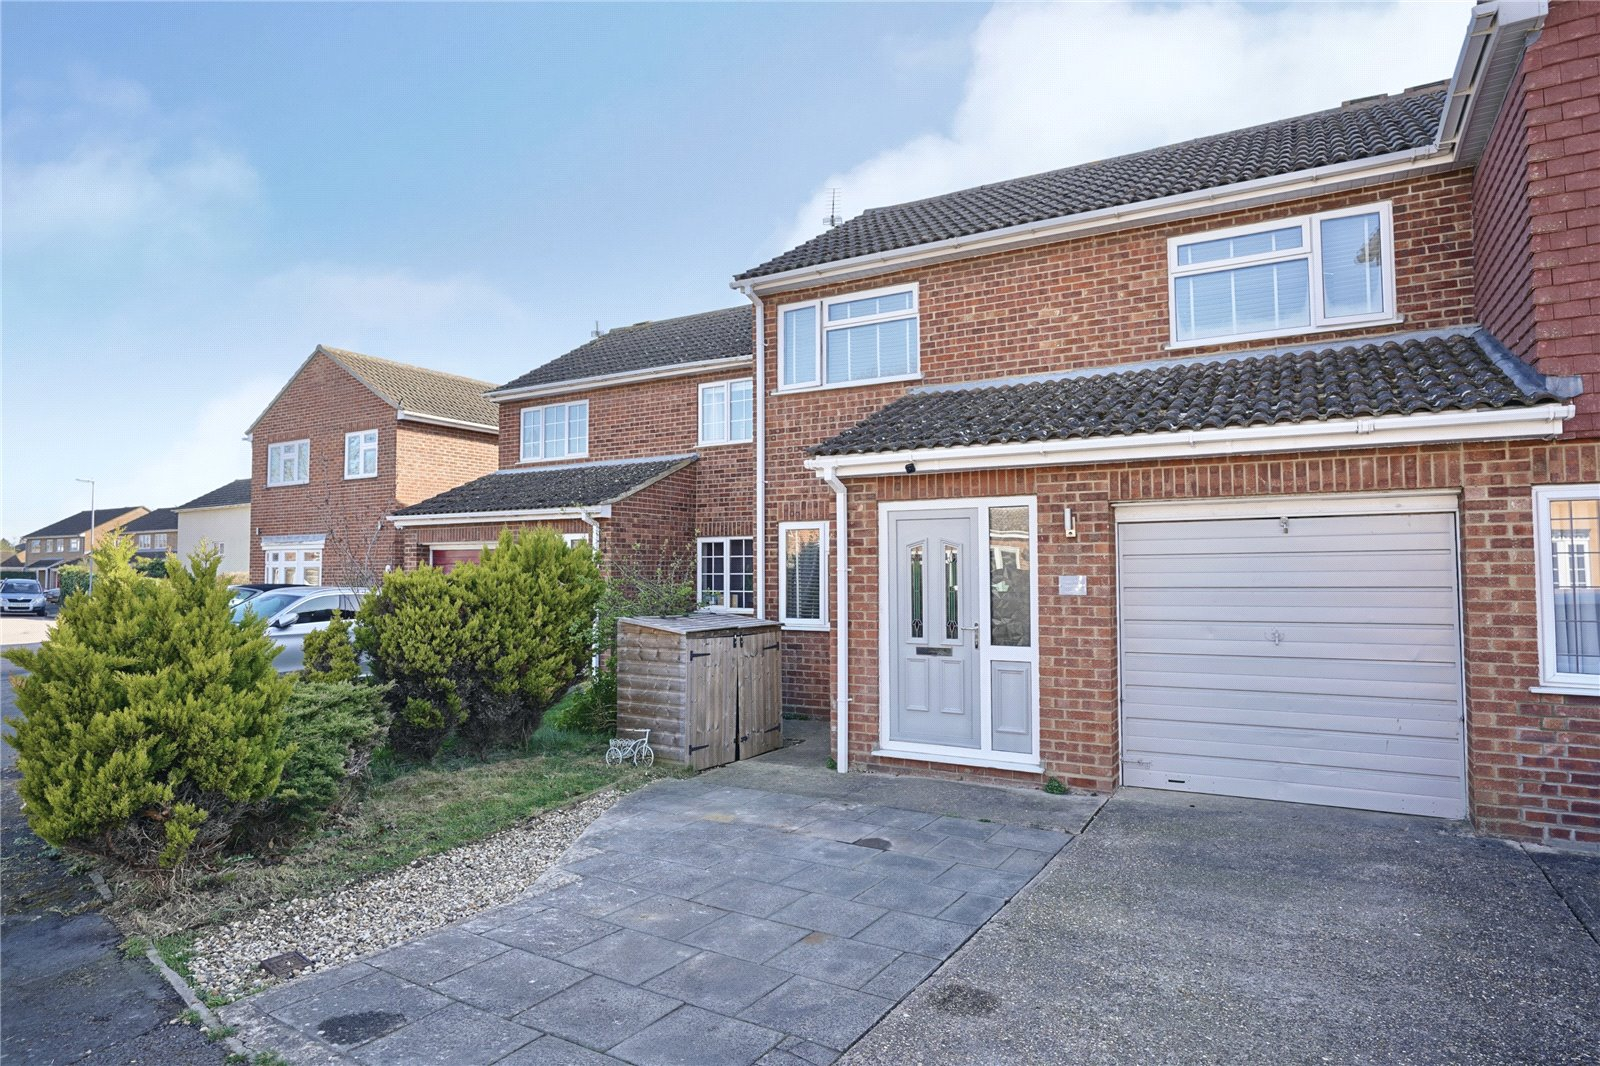 3 bed house for sale in Earith, PE28 3QY  - Property Image 1